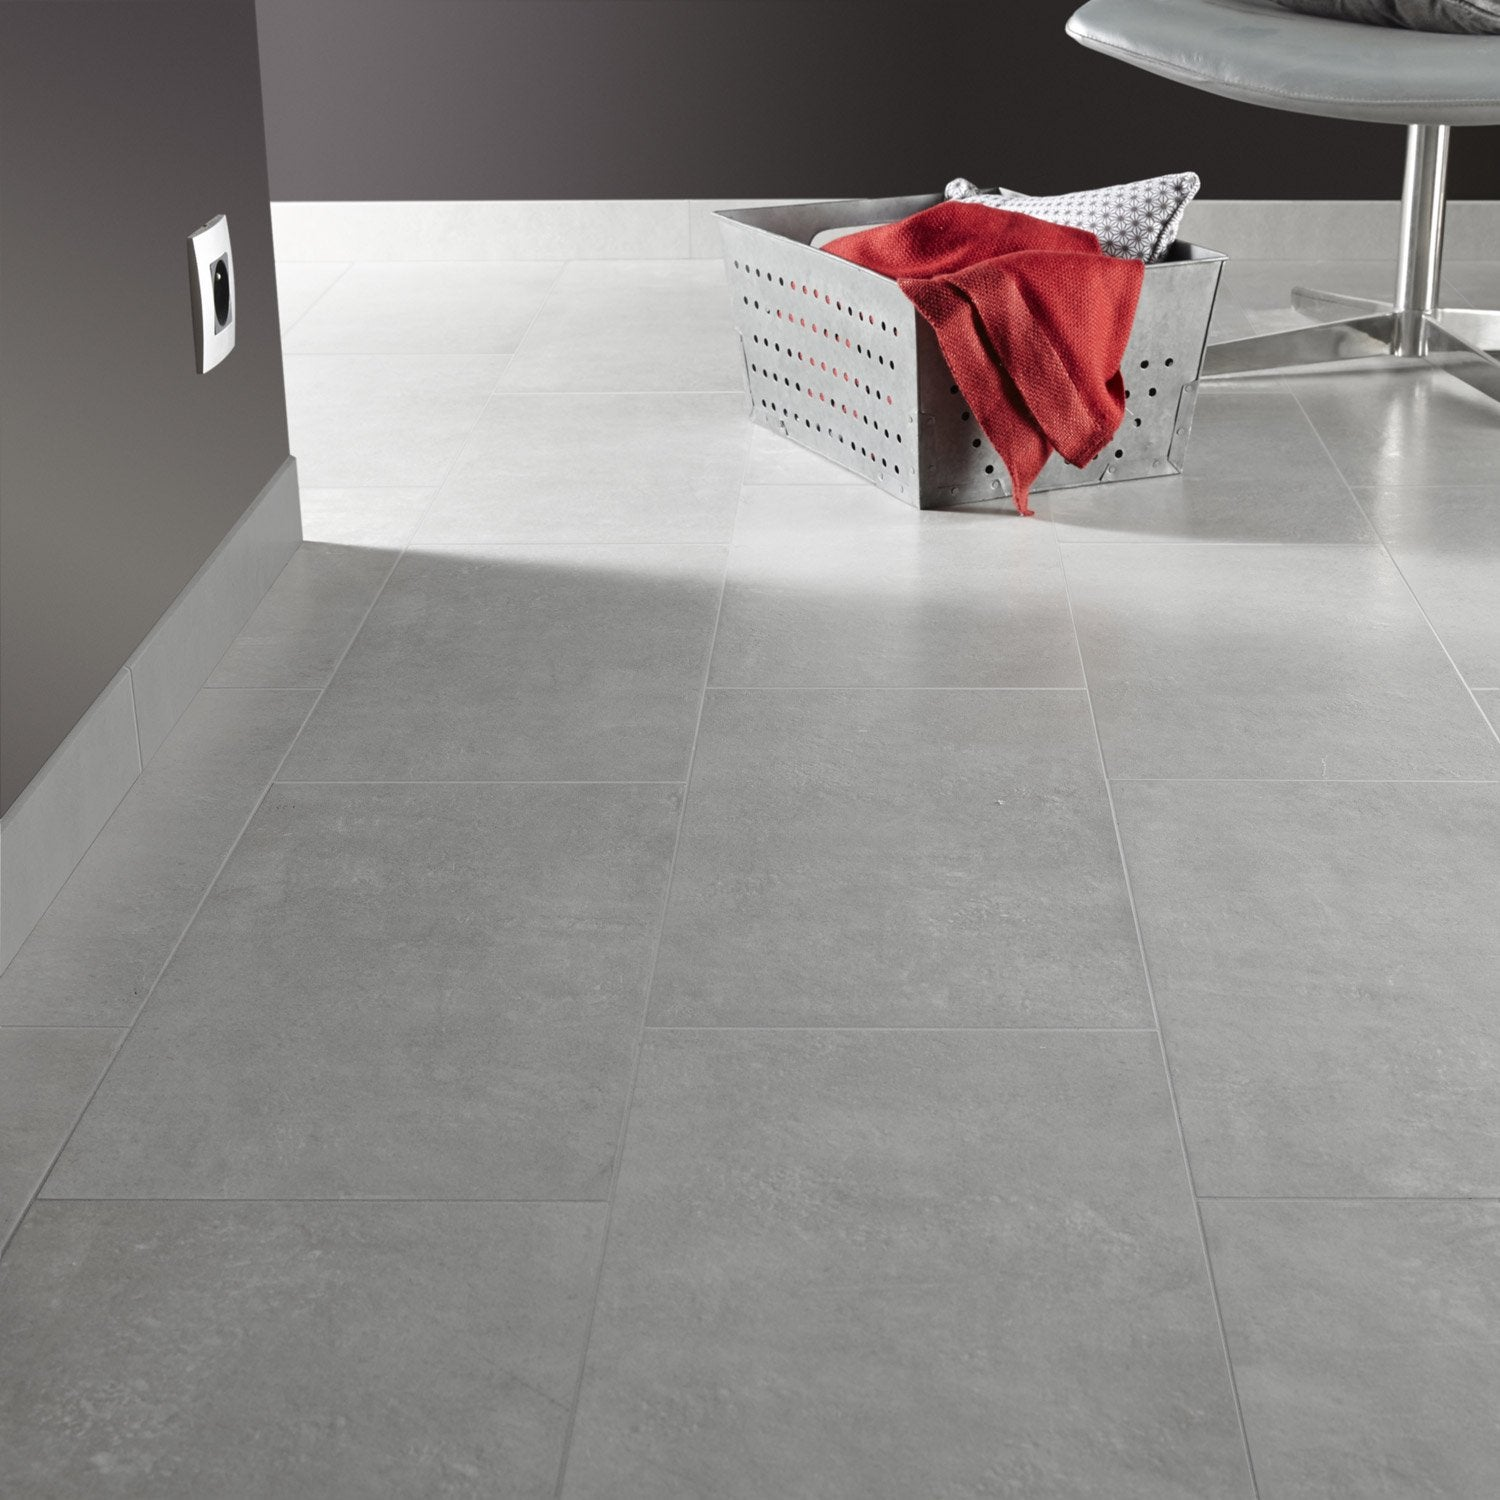 Carrelage leroy merlin gris maison design for Carrelage gris leroy merlin